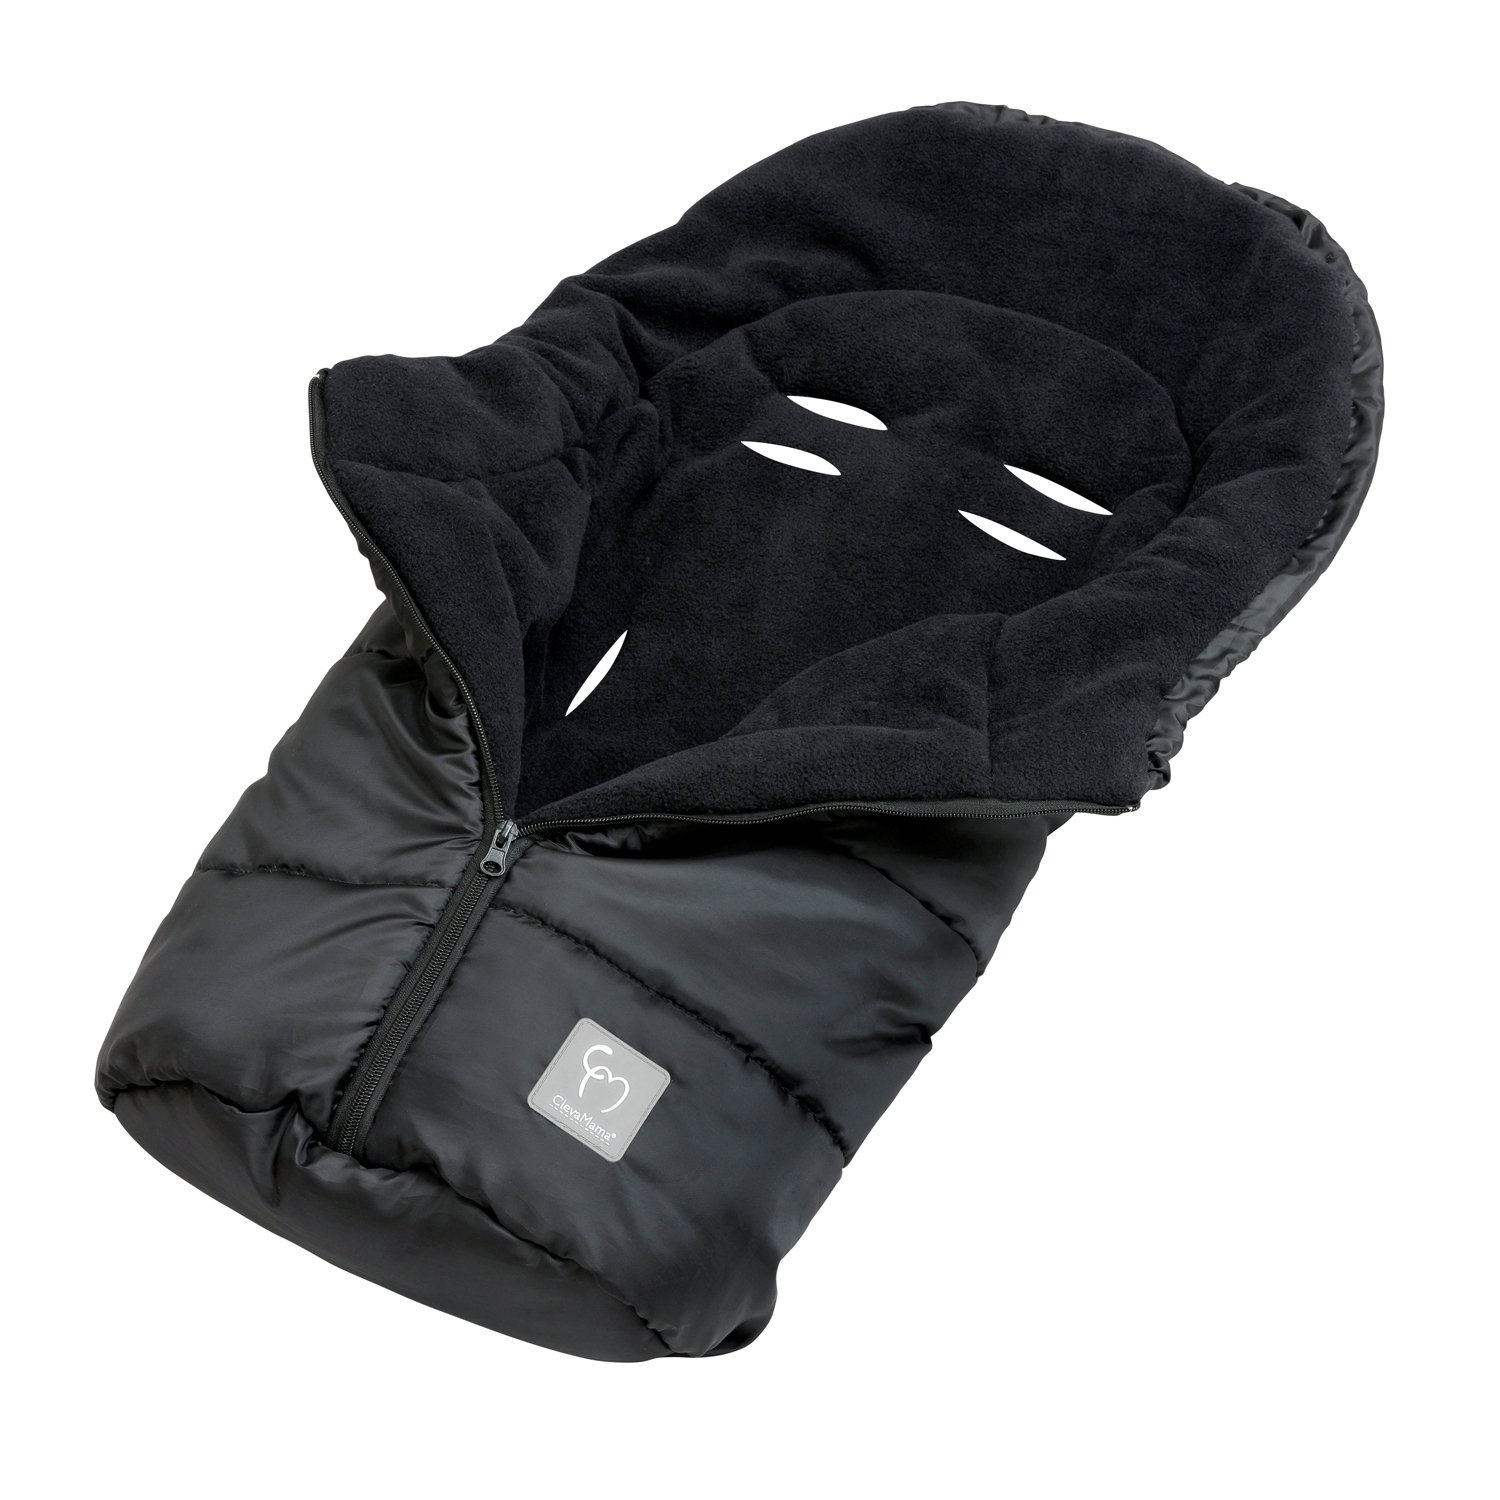 Clevamama Universal Baby Footmuff for Car Seat, Black